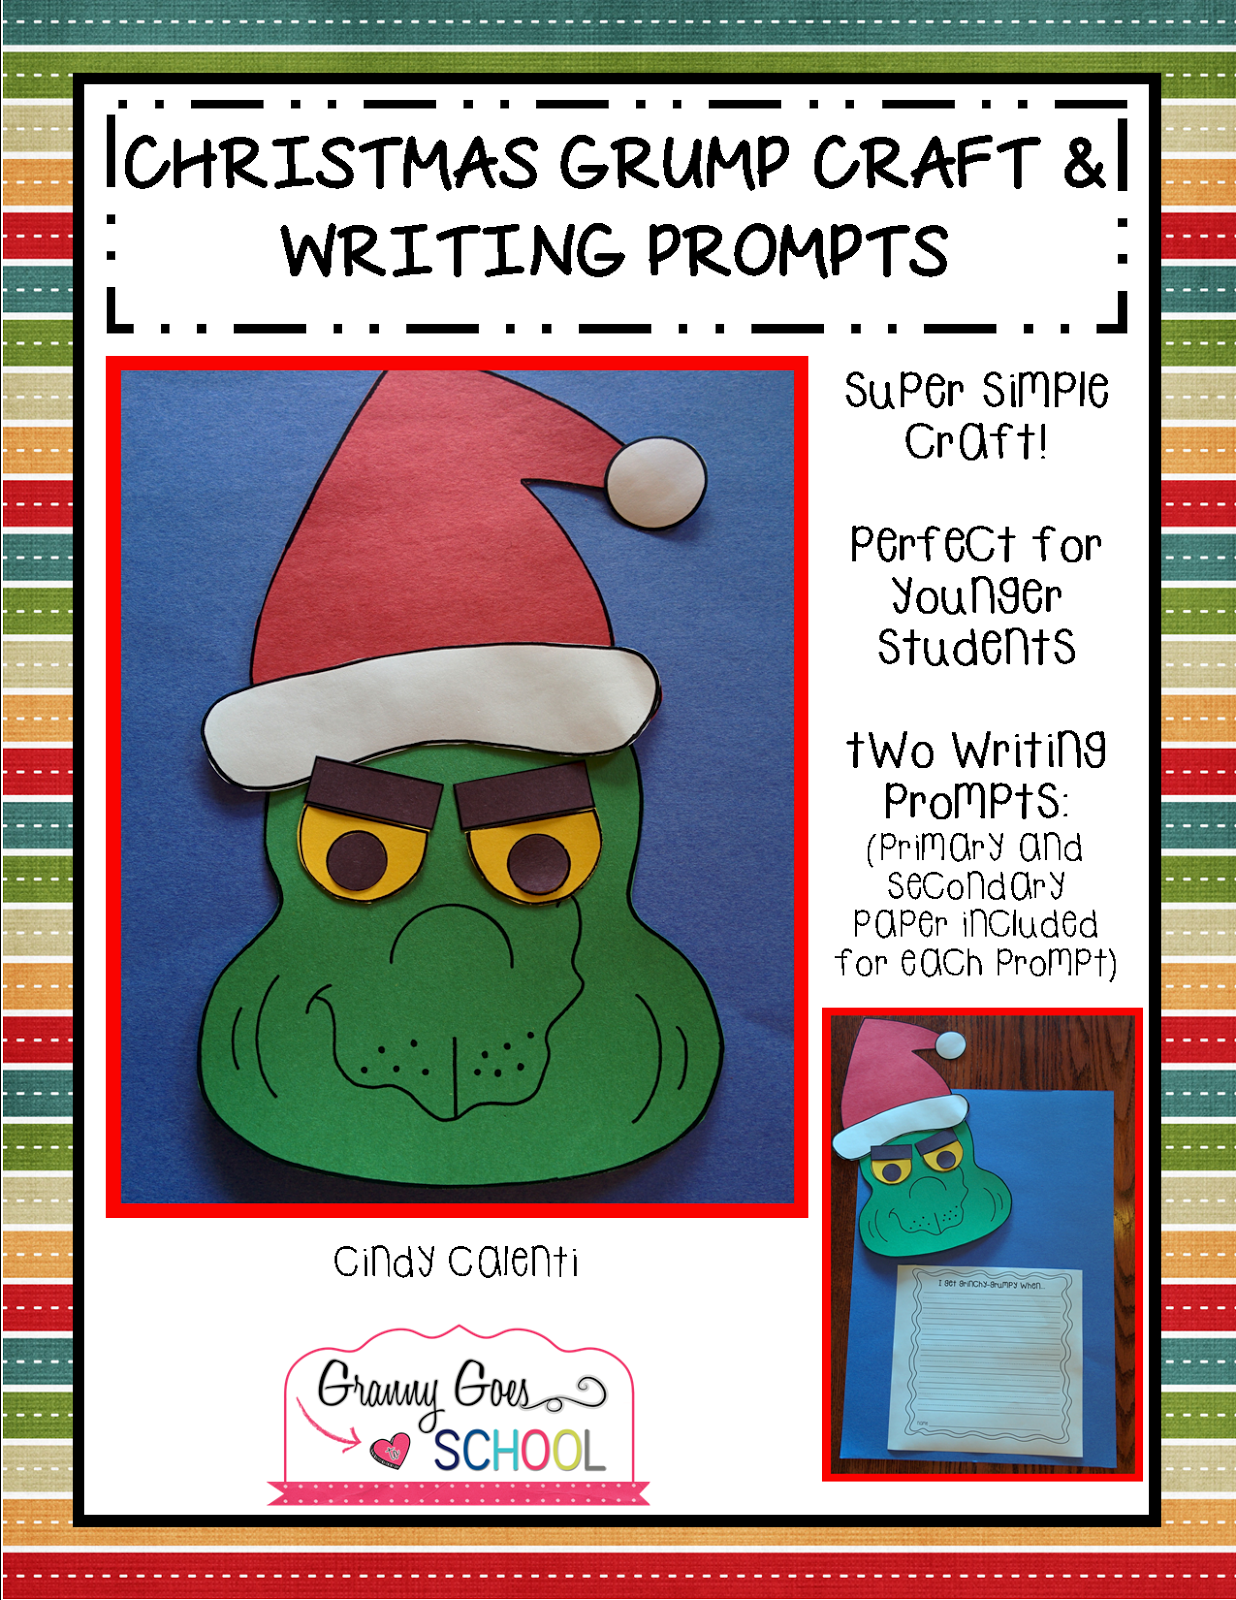 http://www.teacherspayteachers.com/Product/Christmas-Grump-Craft-and-Writing-Propmts-1601299